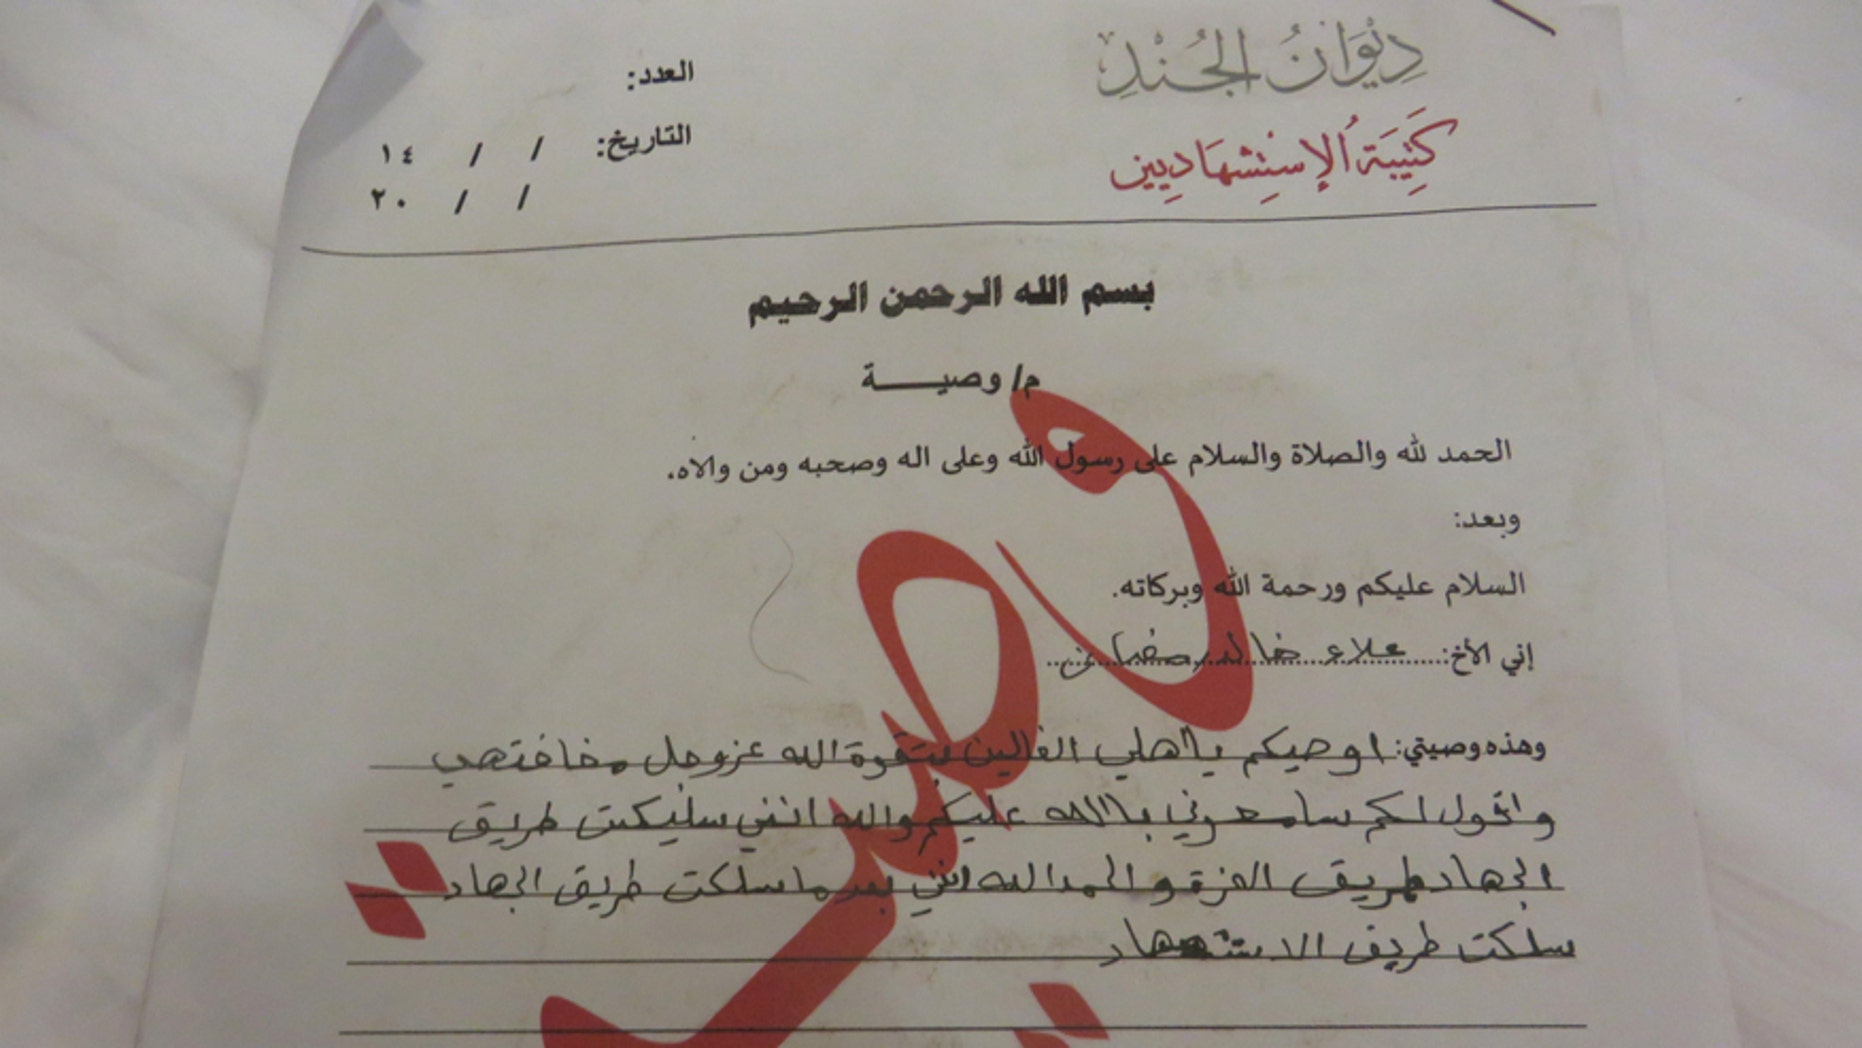 Teenage militant Alaa abd al-Akeedi's final letter to his family appears on official Islamic State stationery in Mosul in Erbil, Iraq, February 26, 2017. Picture taken February 26, 2017. REUTERS/Alaa Al-Marjani - RTS10LGS